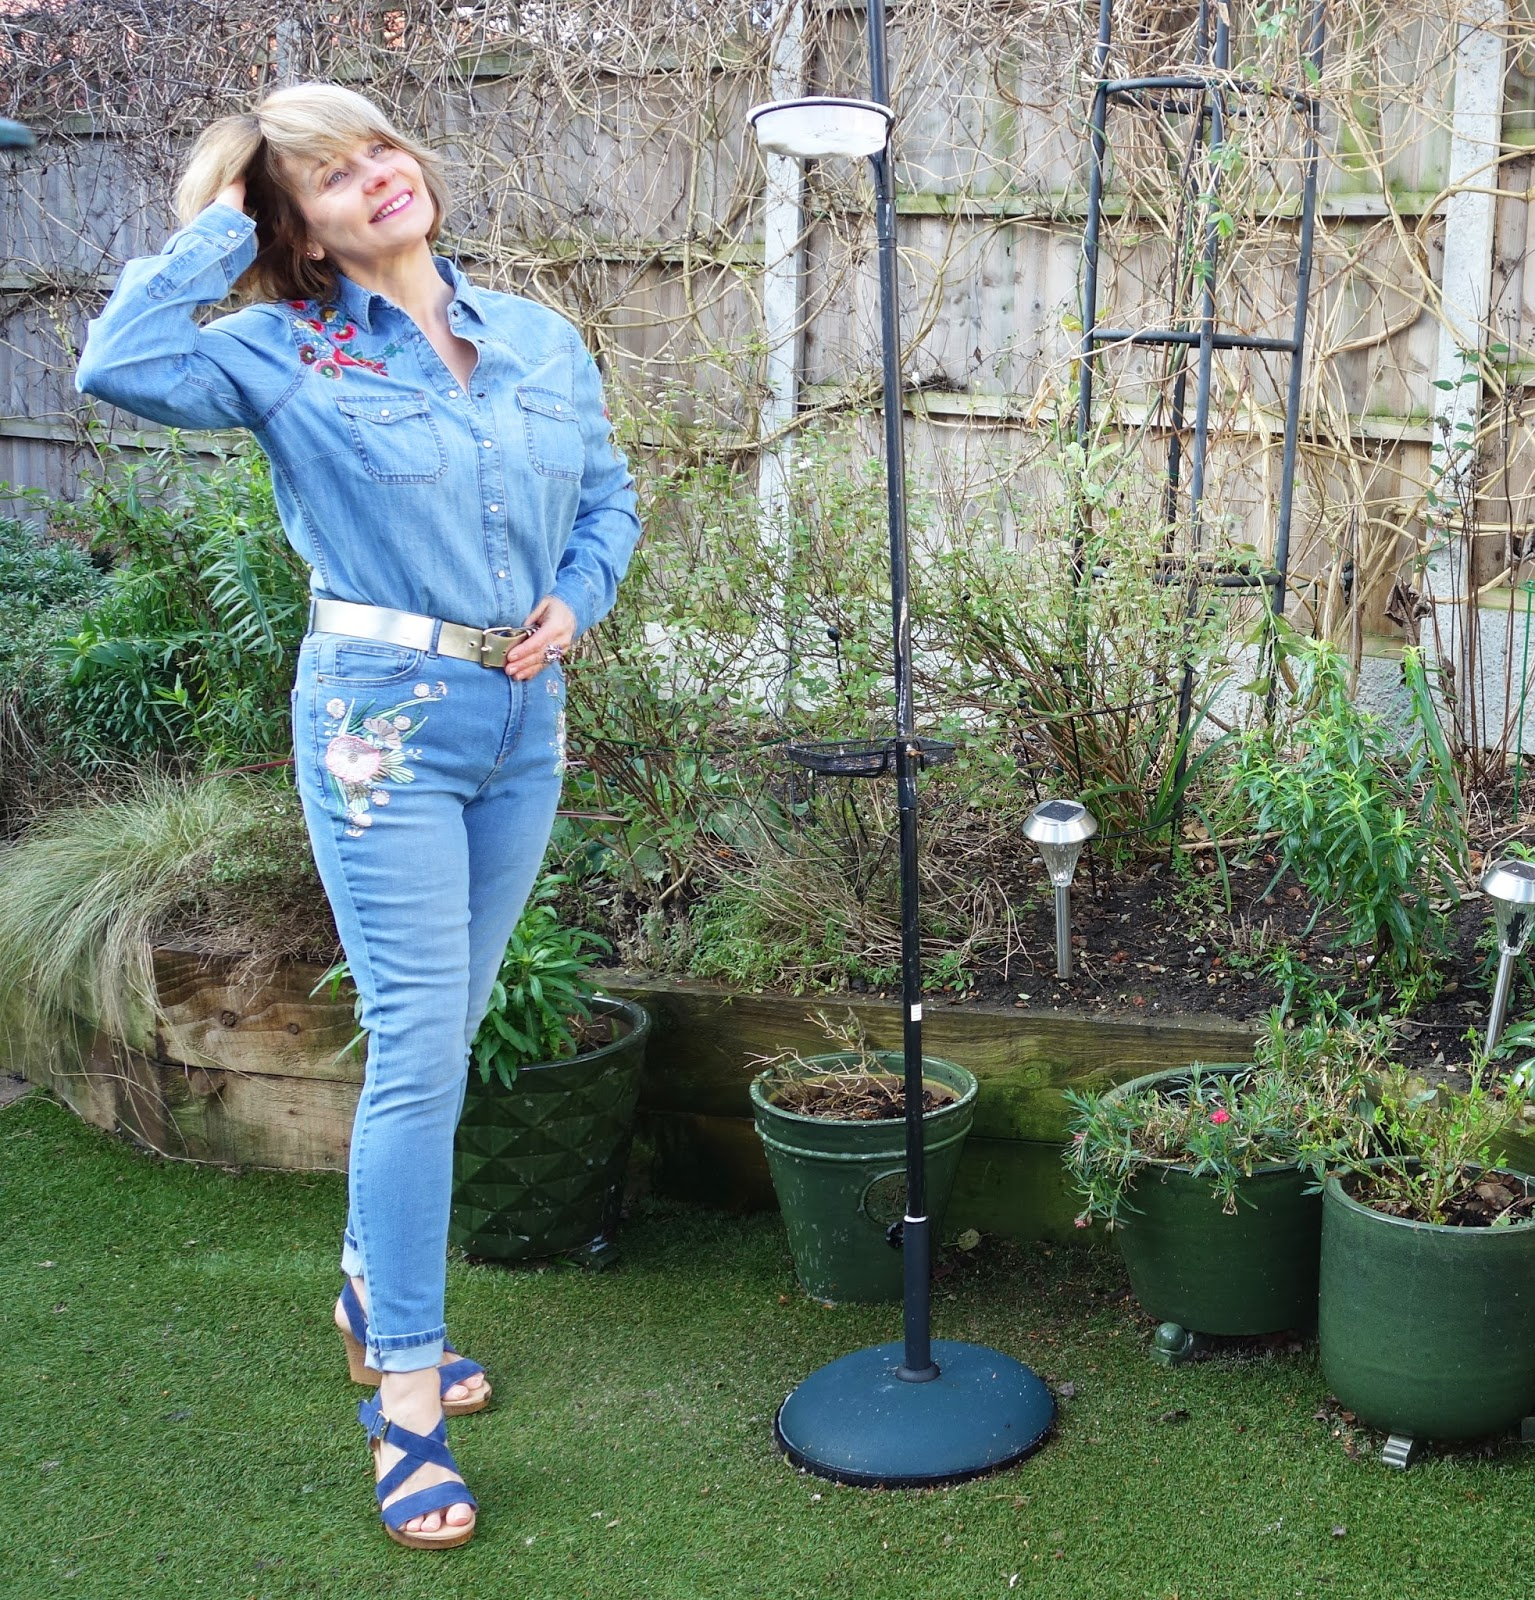 Double denim: embroidered jeans and embroidered shirt